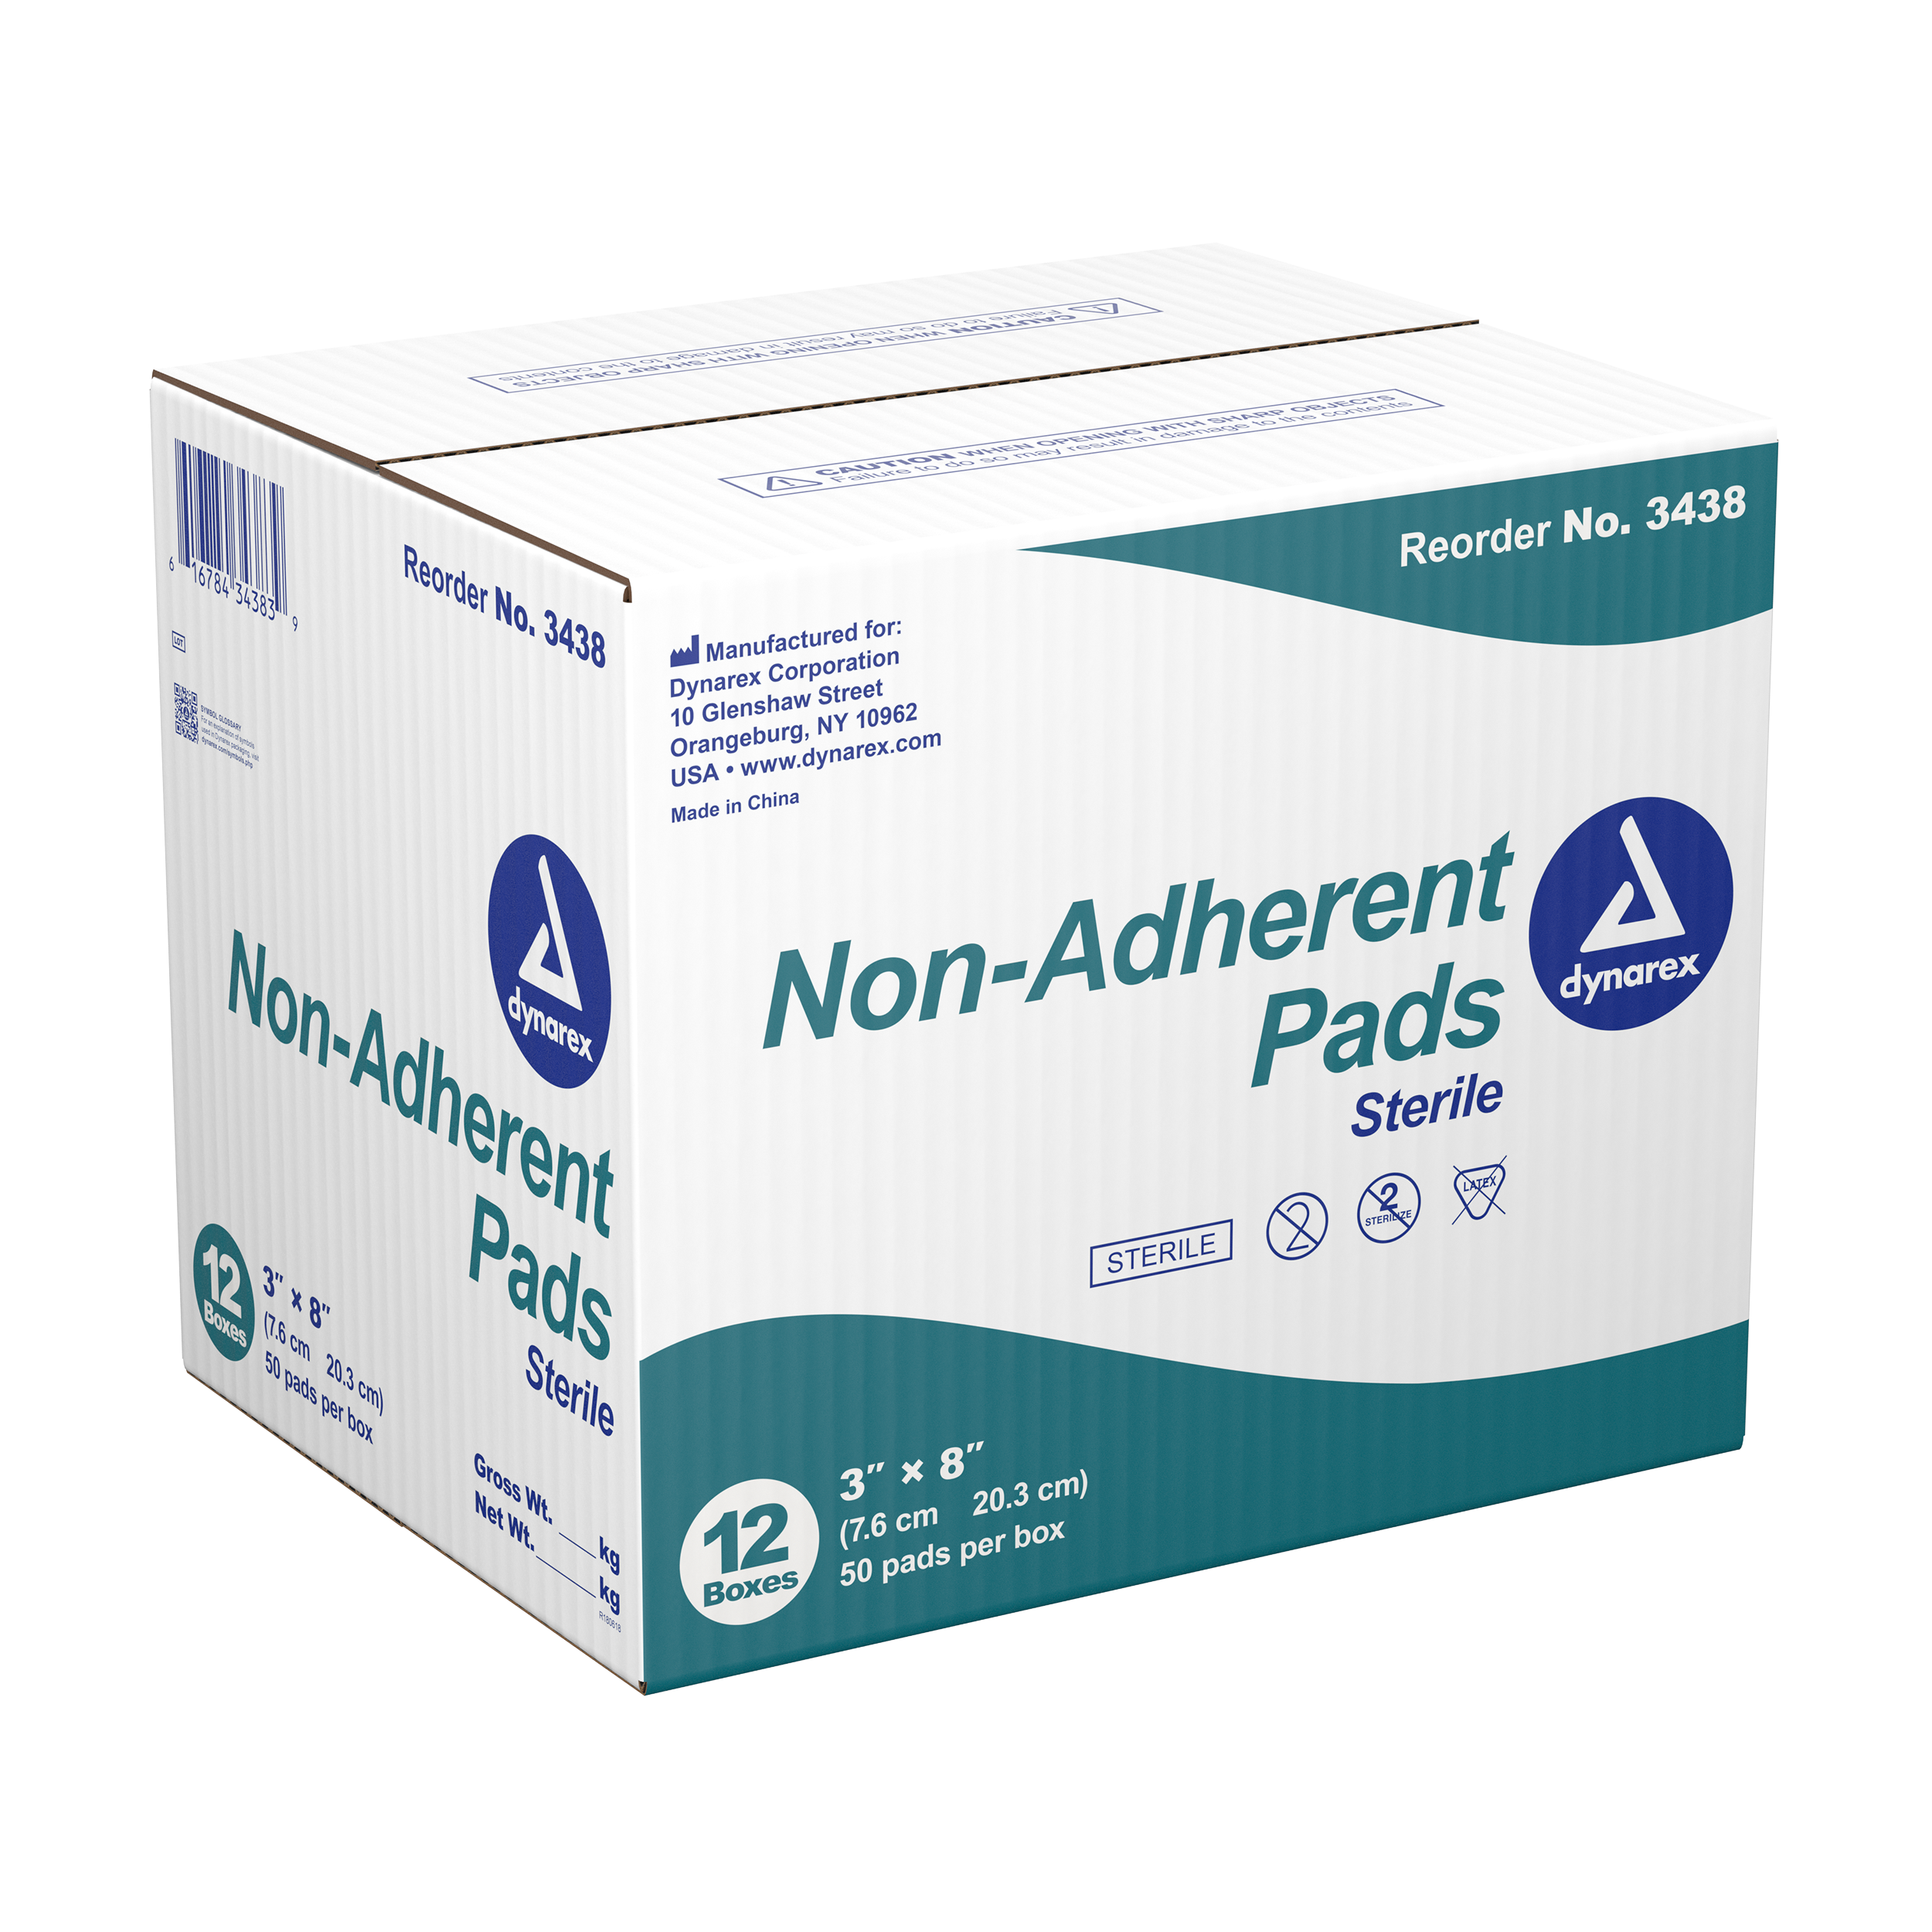 Non-adherent Pads Sterile - 3